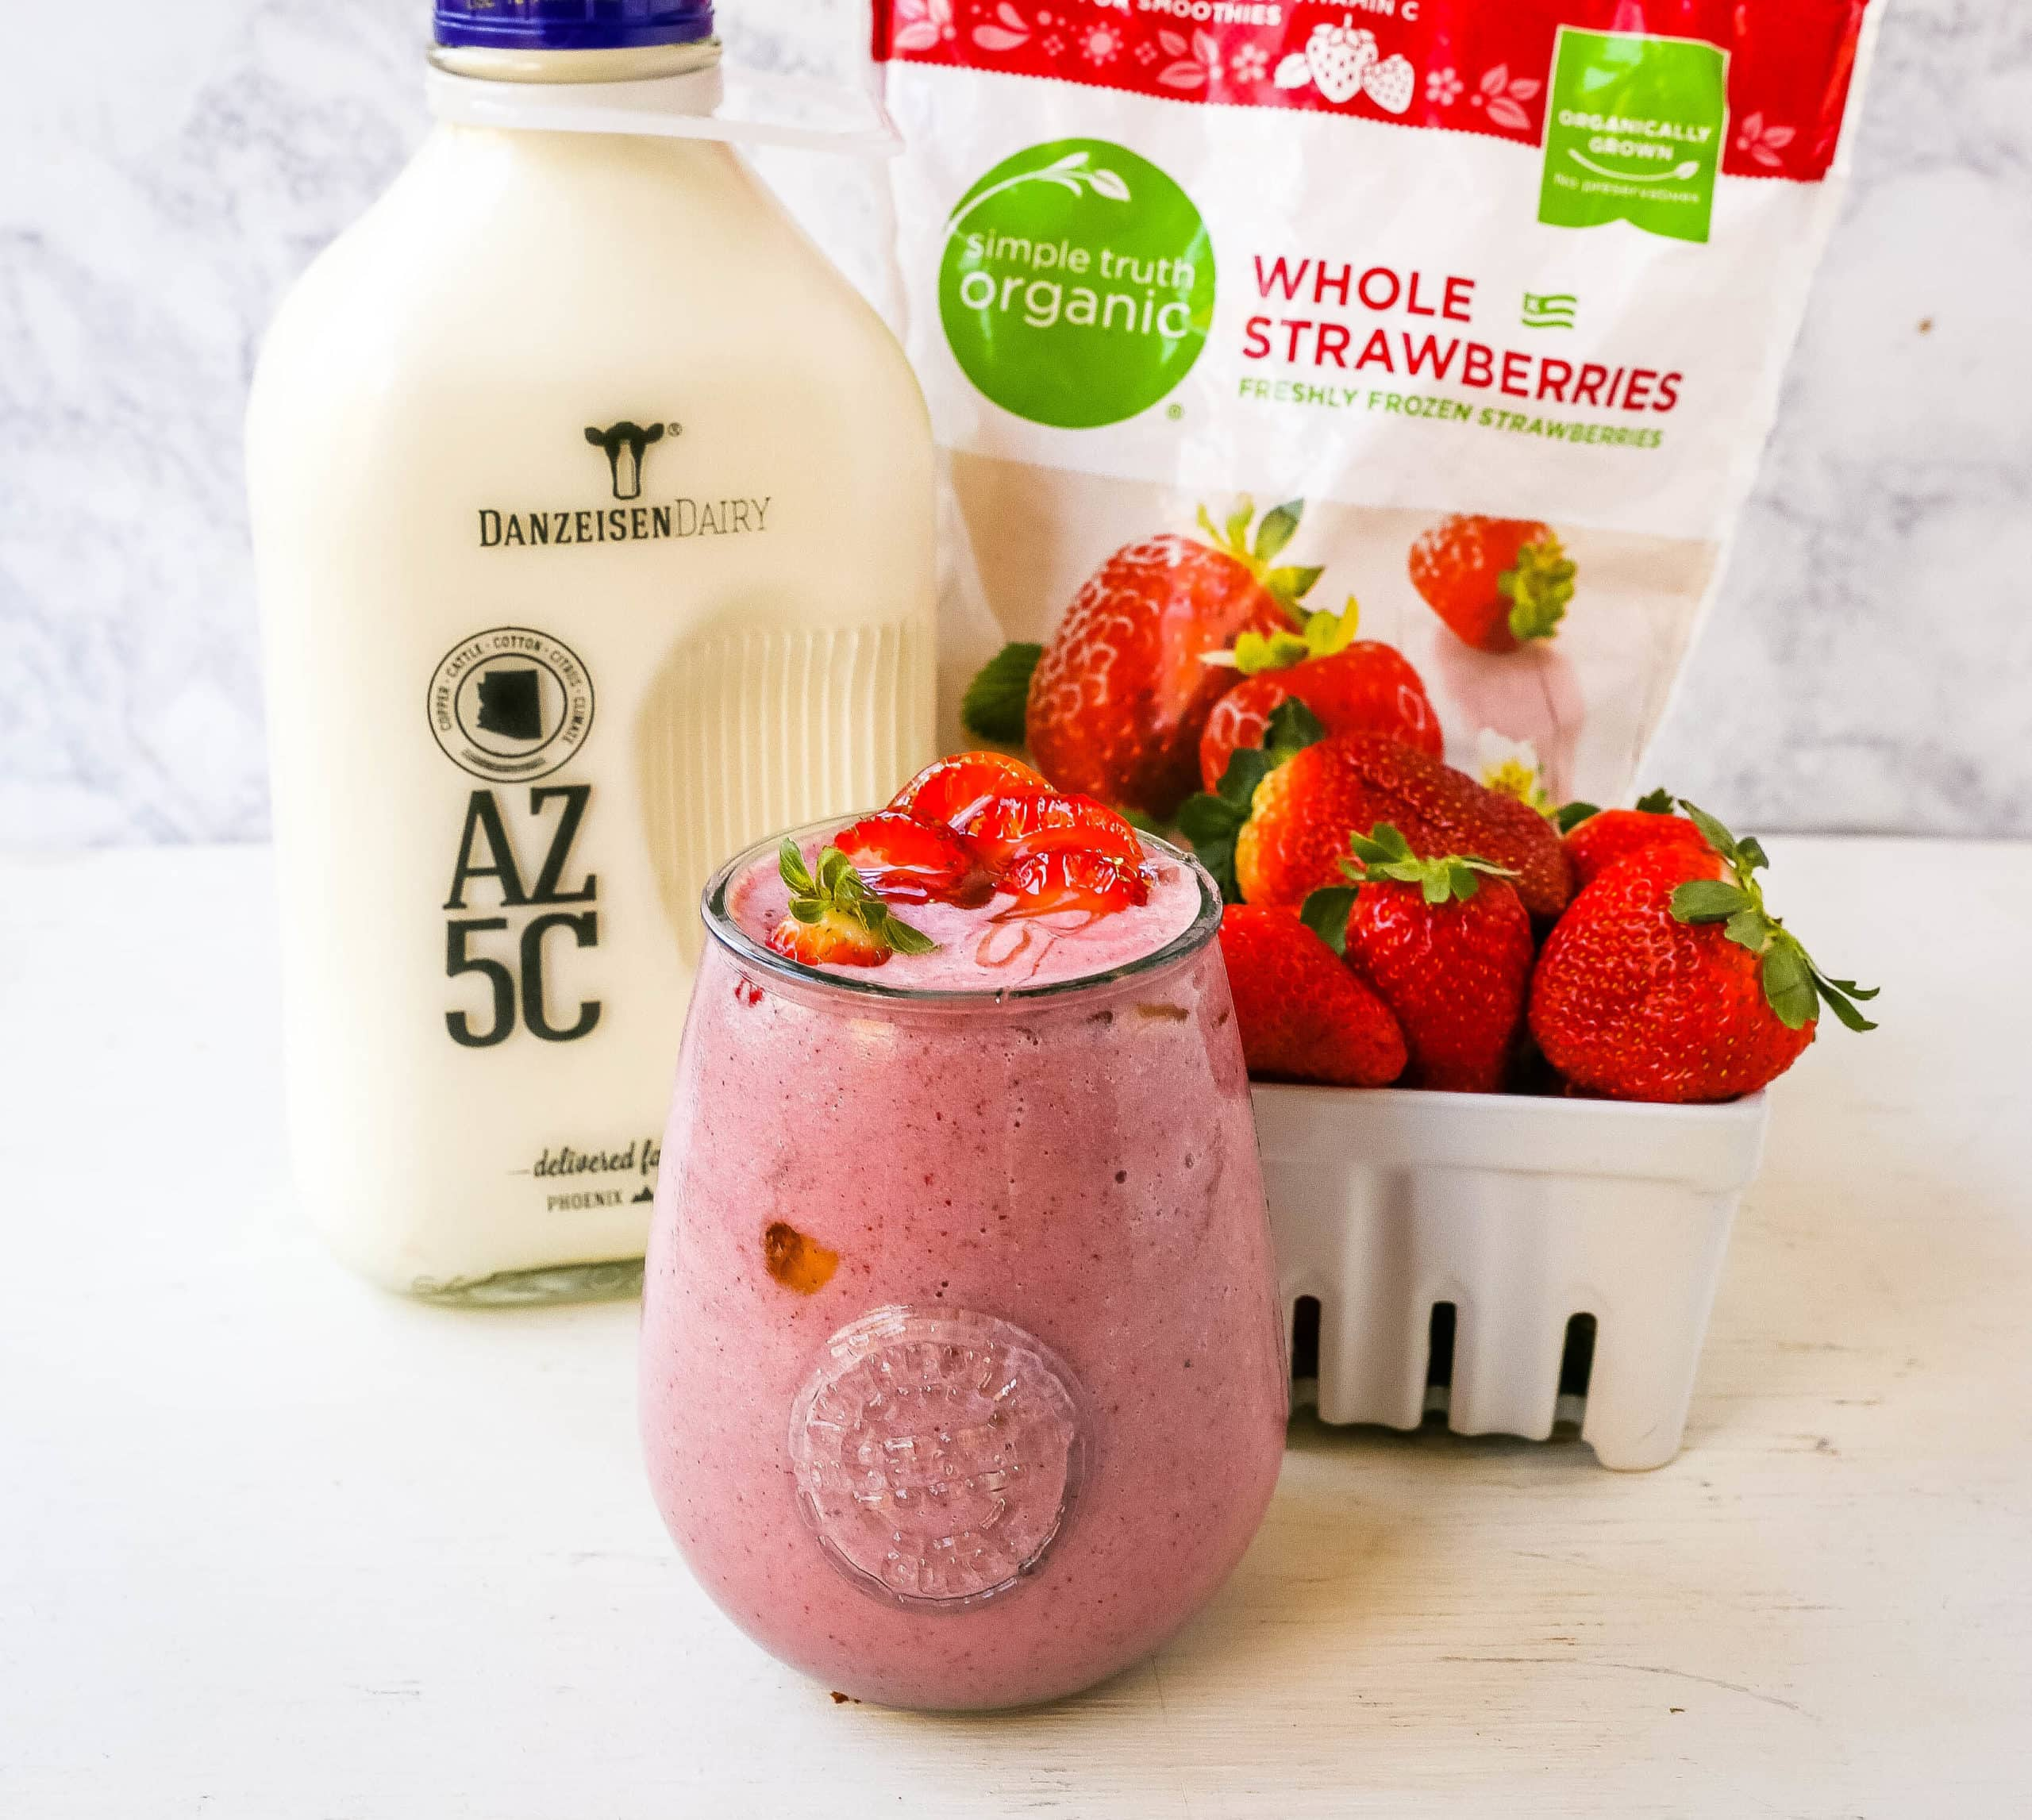 Strawberry Banana Smoothie. Creamy strawberry banana smoothie made with strawberries, bananas, your favorite type of milk, honey, and almond butter (if you want it extra rich and creamy). www.modernhoney.com #smoothie #smoothies #strawberrysmoothie